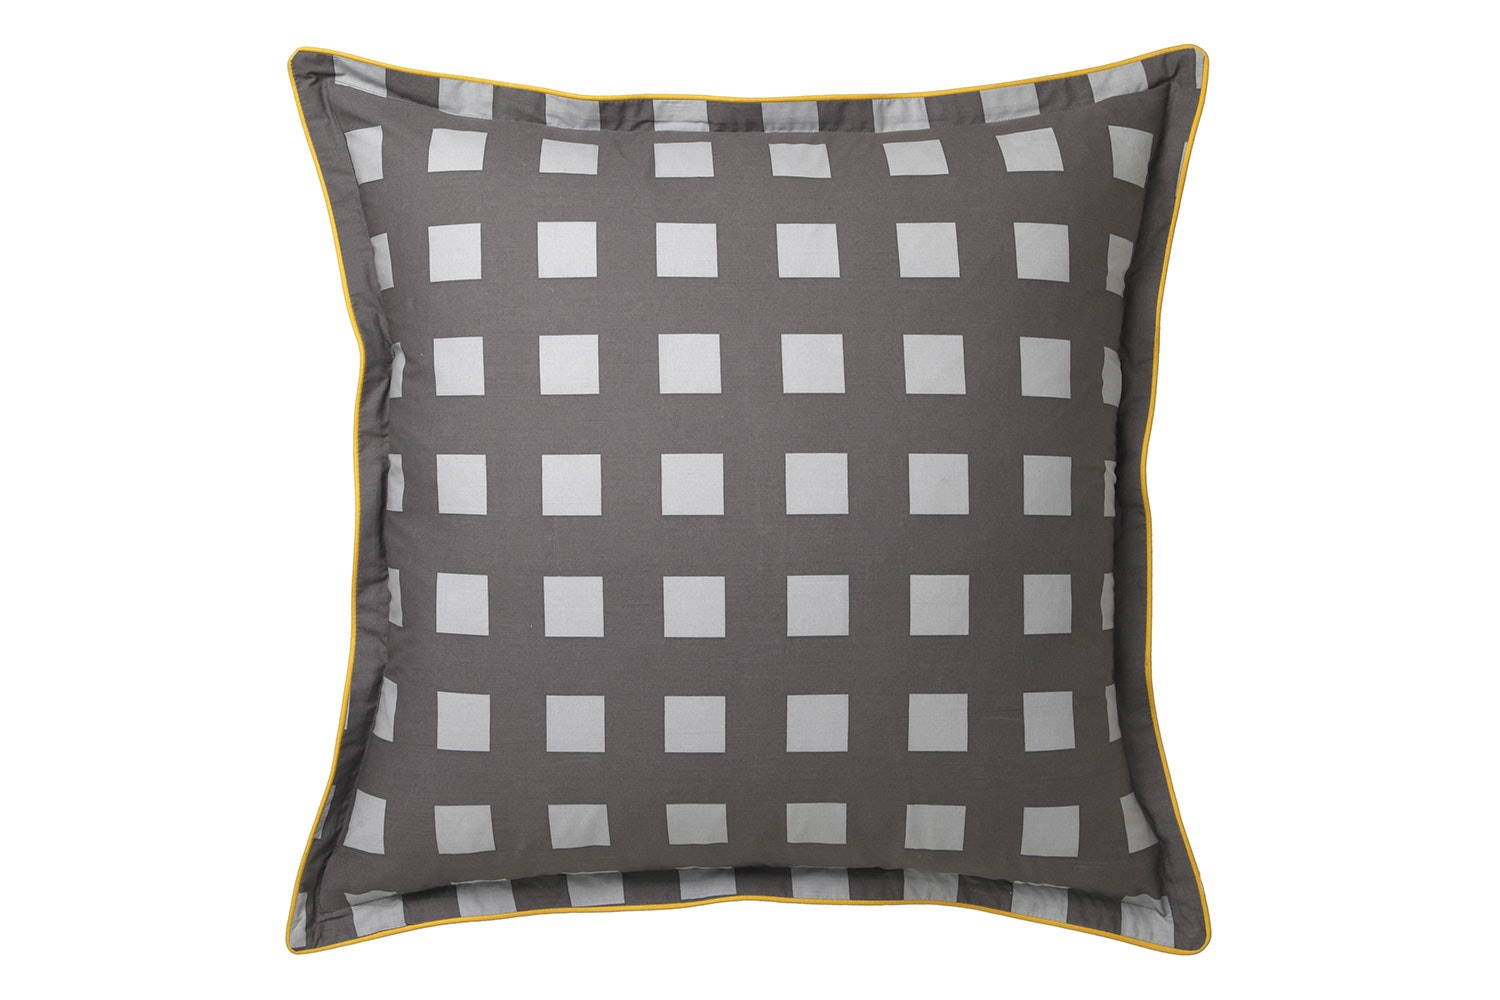 Conway Charcoal Duvet Cover Set by Platinum Collection - Euro Pillowcase